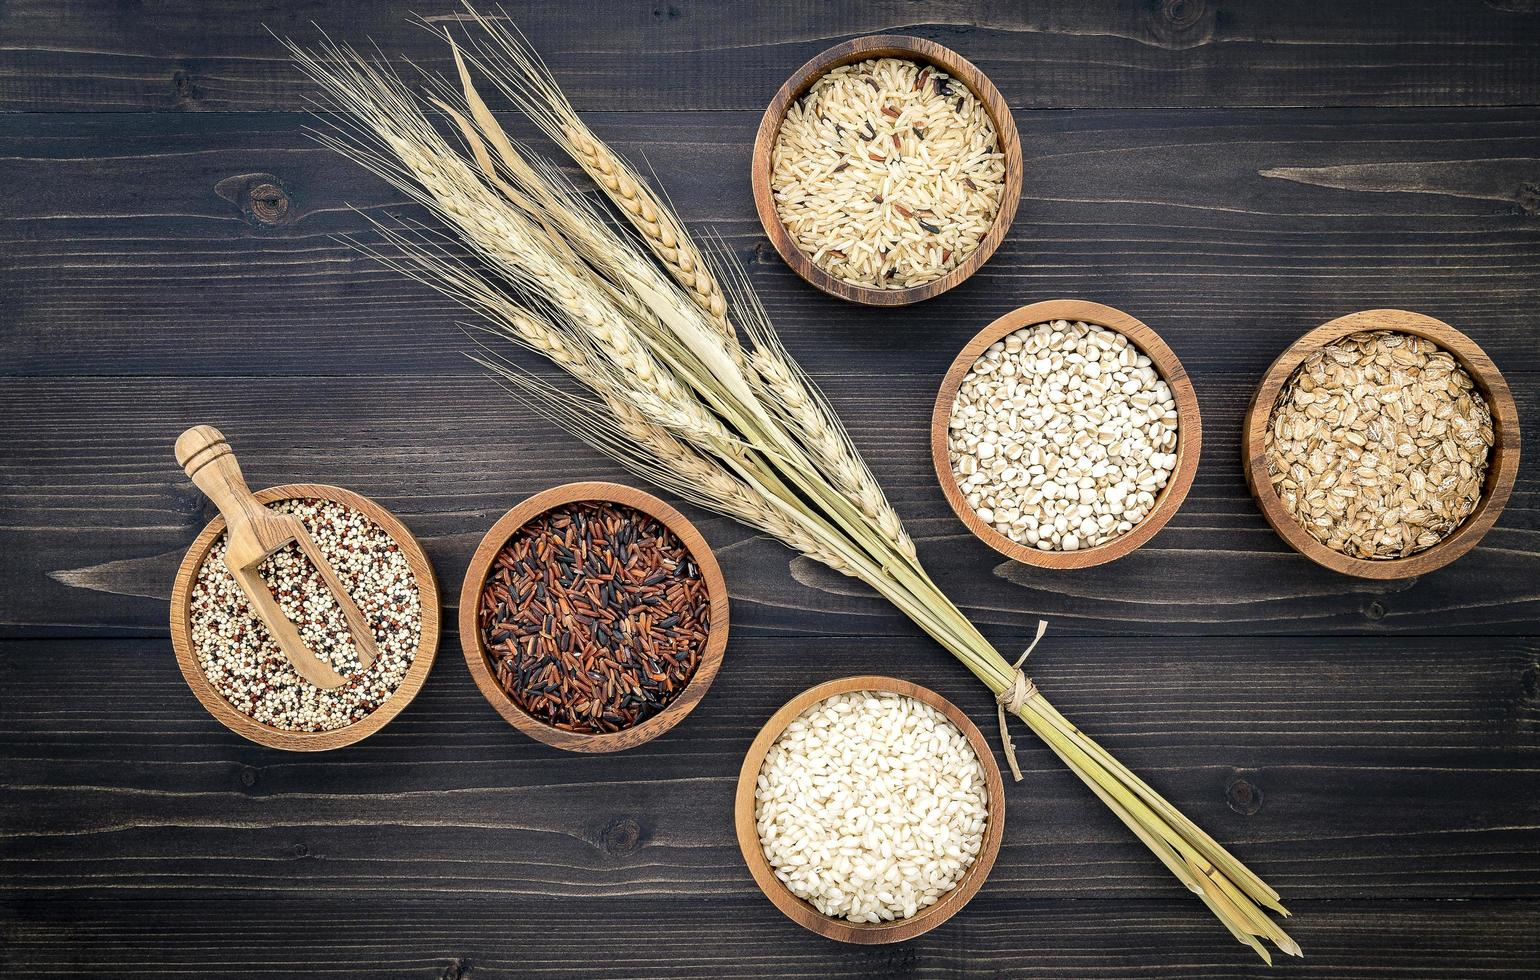 Top view of grains photo